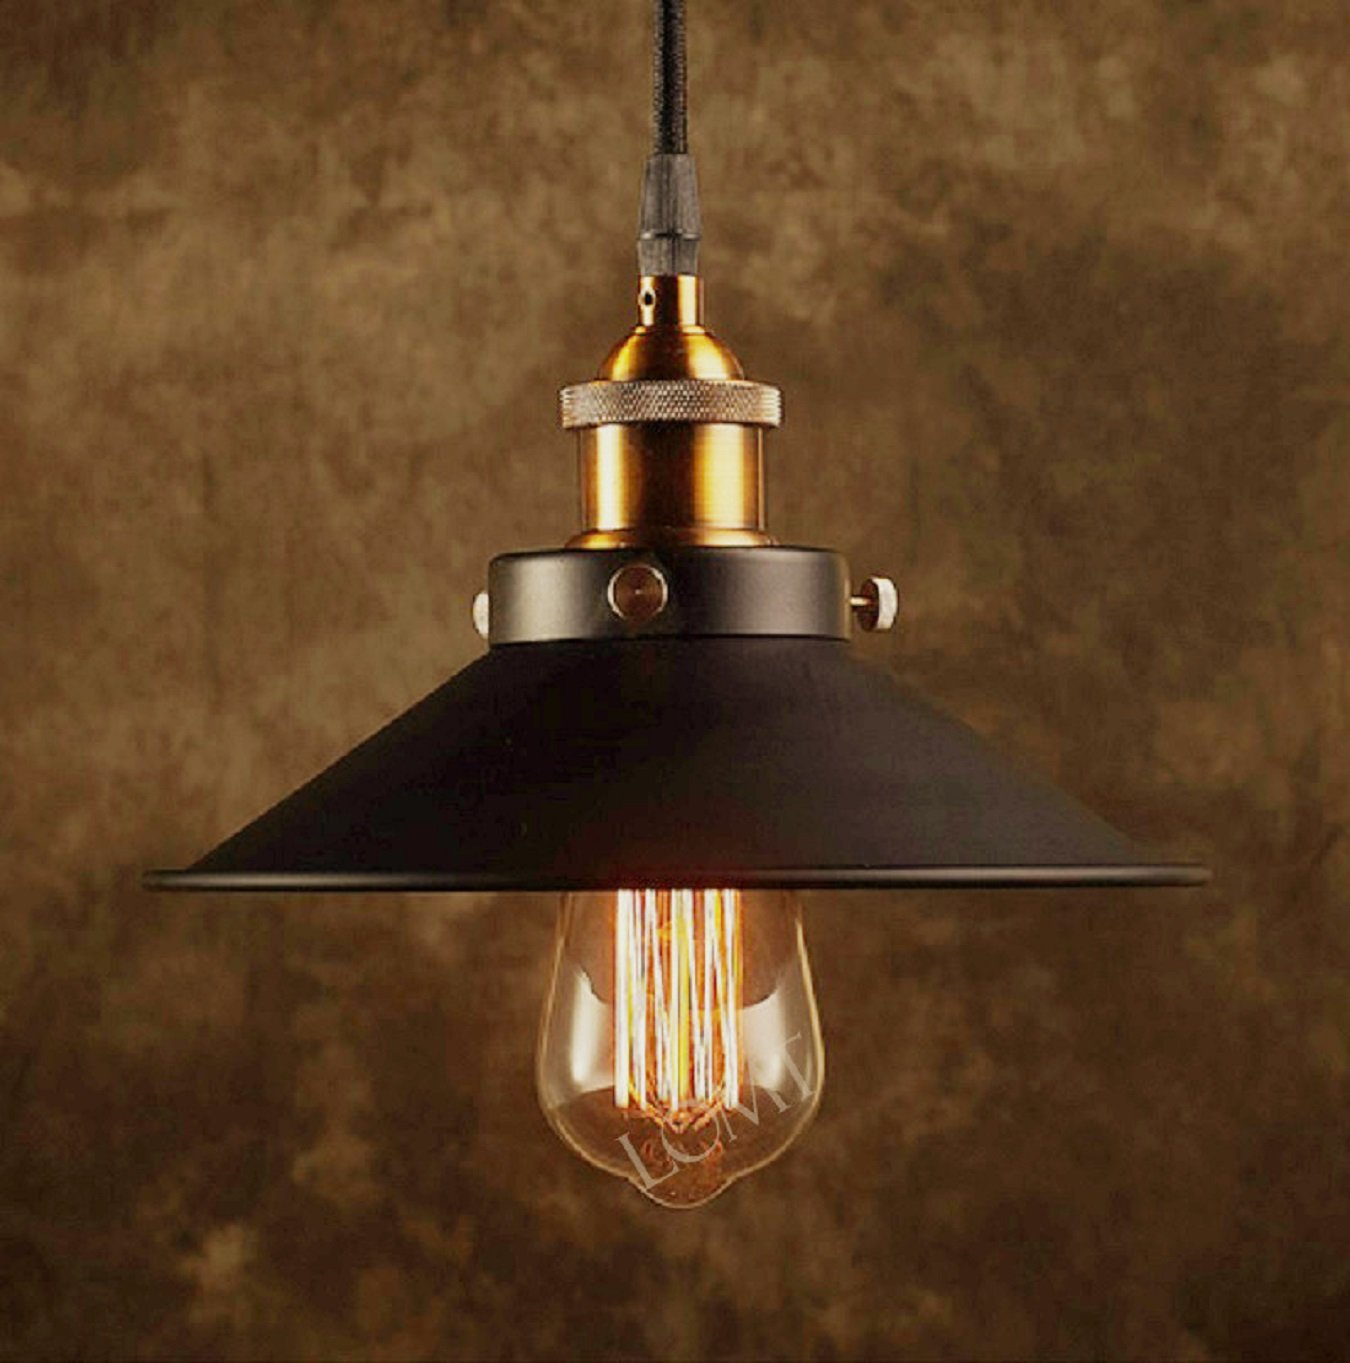 Modern vintage industrial metal black bronze loft bar ceiling modern vintage industrial metal black bronze loft bar ceiling light shade retro pendant light amazon lighting aloadofball Gallery